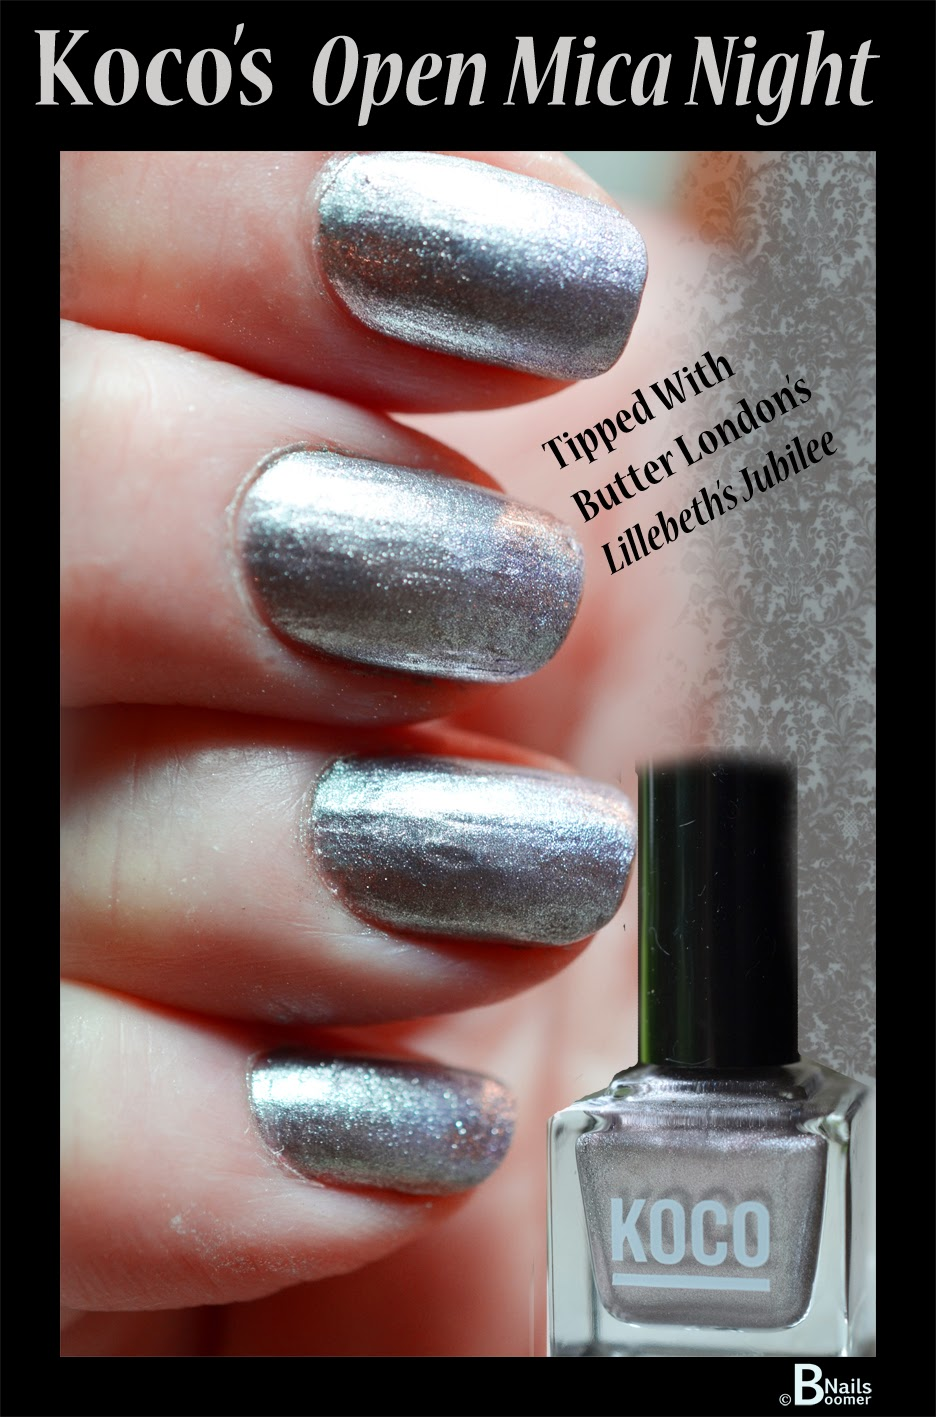 B\'Nails: KOCO by beauty brands-Open Mica Night with Butter London\'s ...